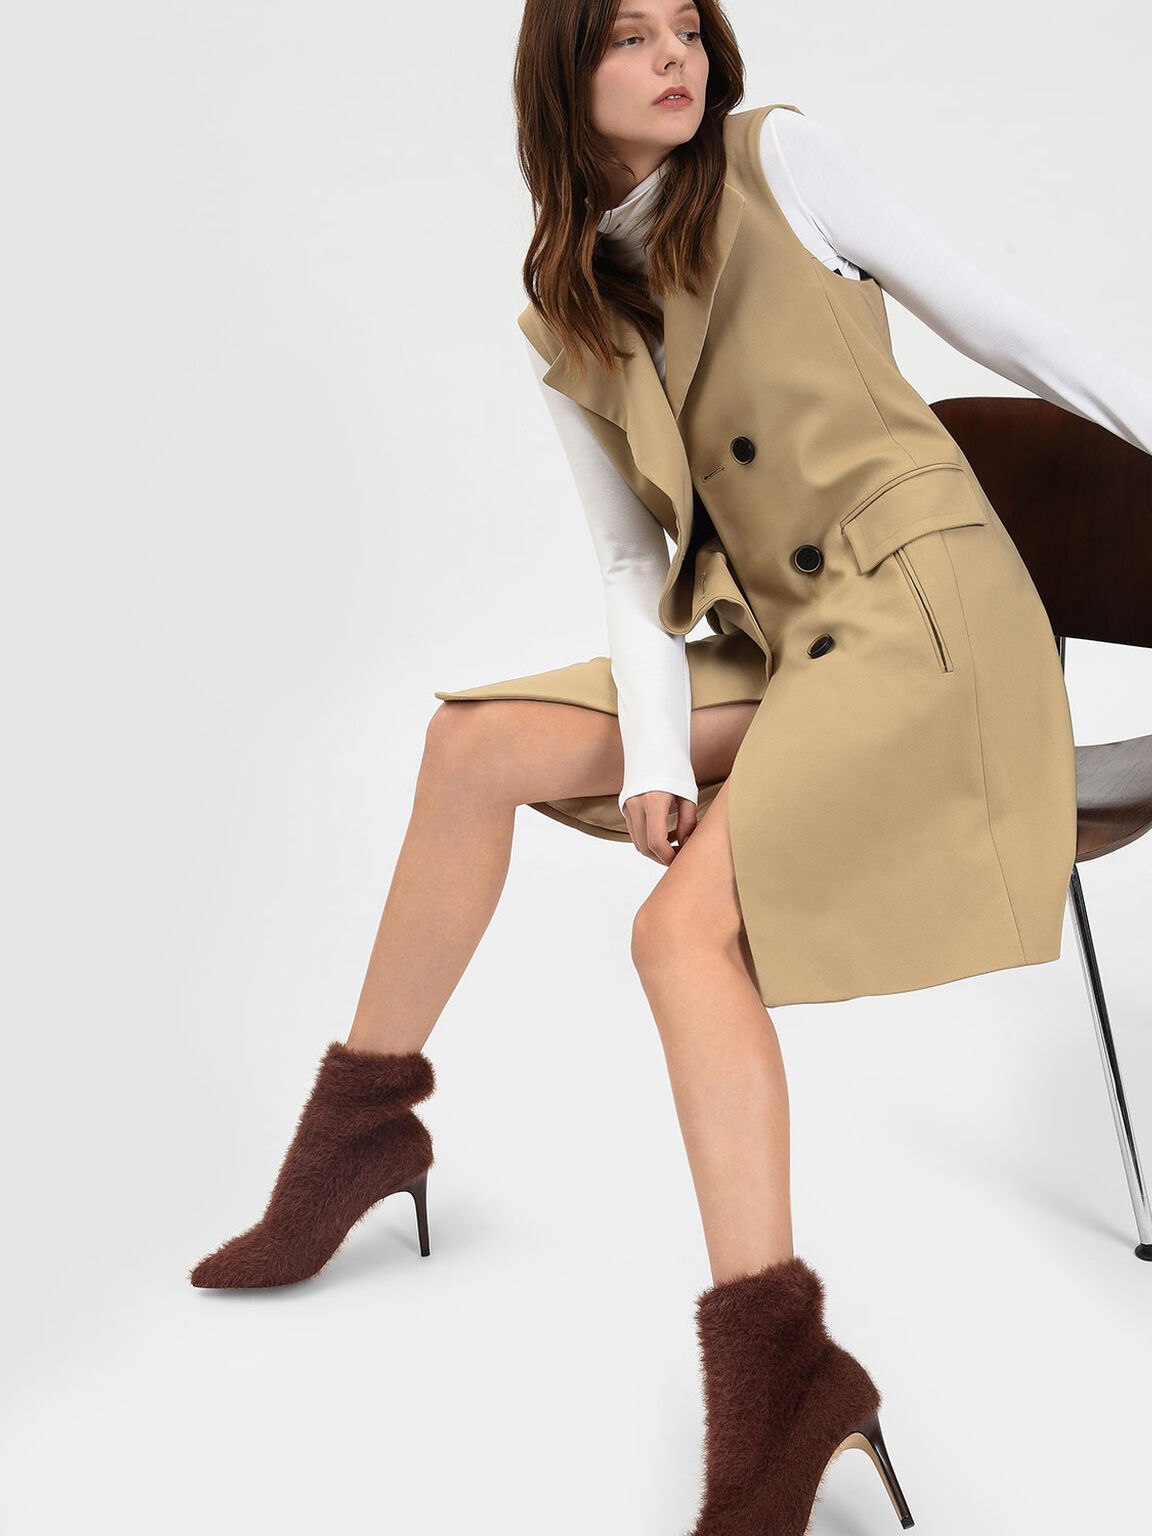 Furry Pointed Boots, Brown, hi-res